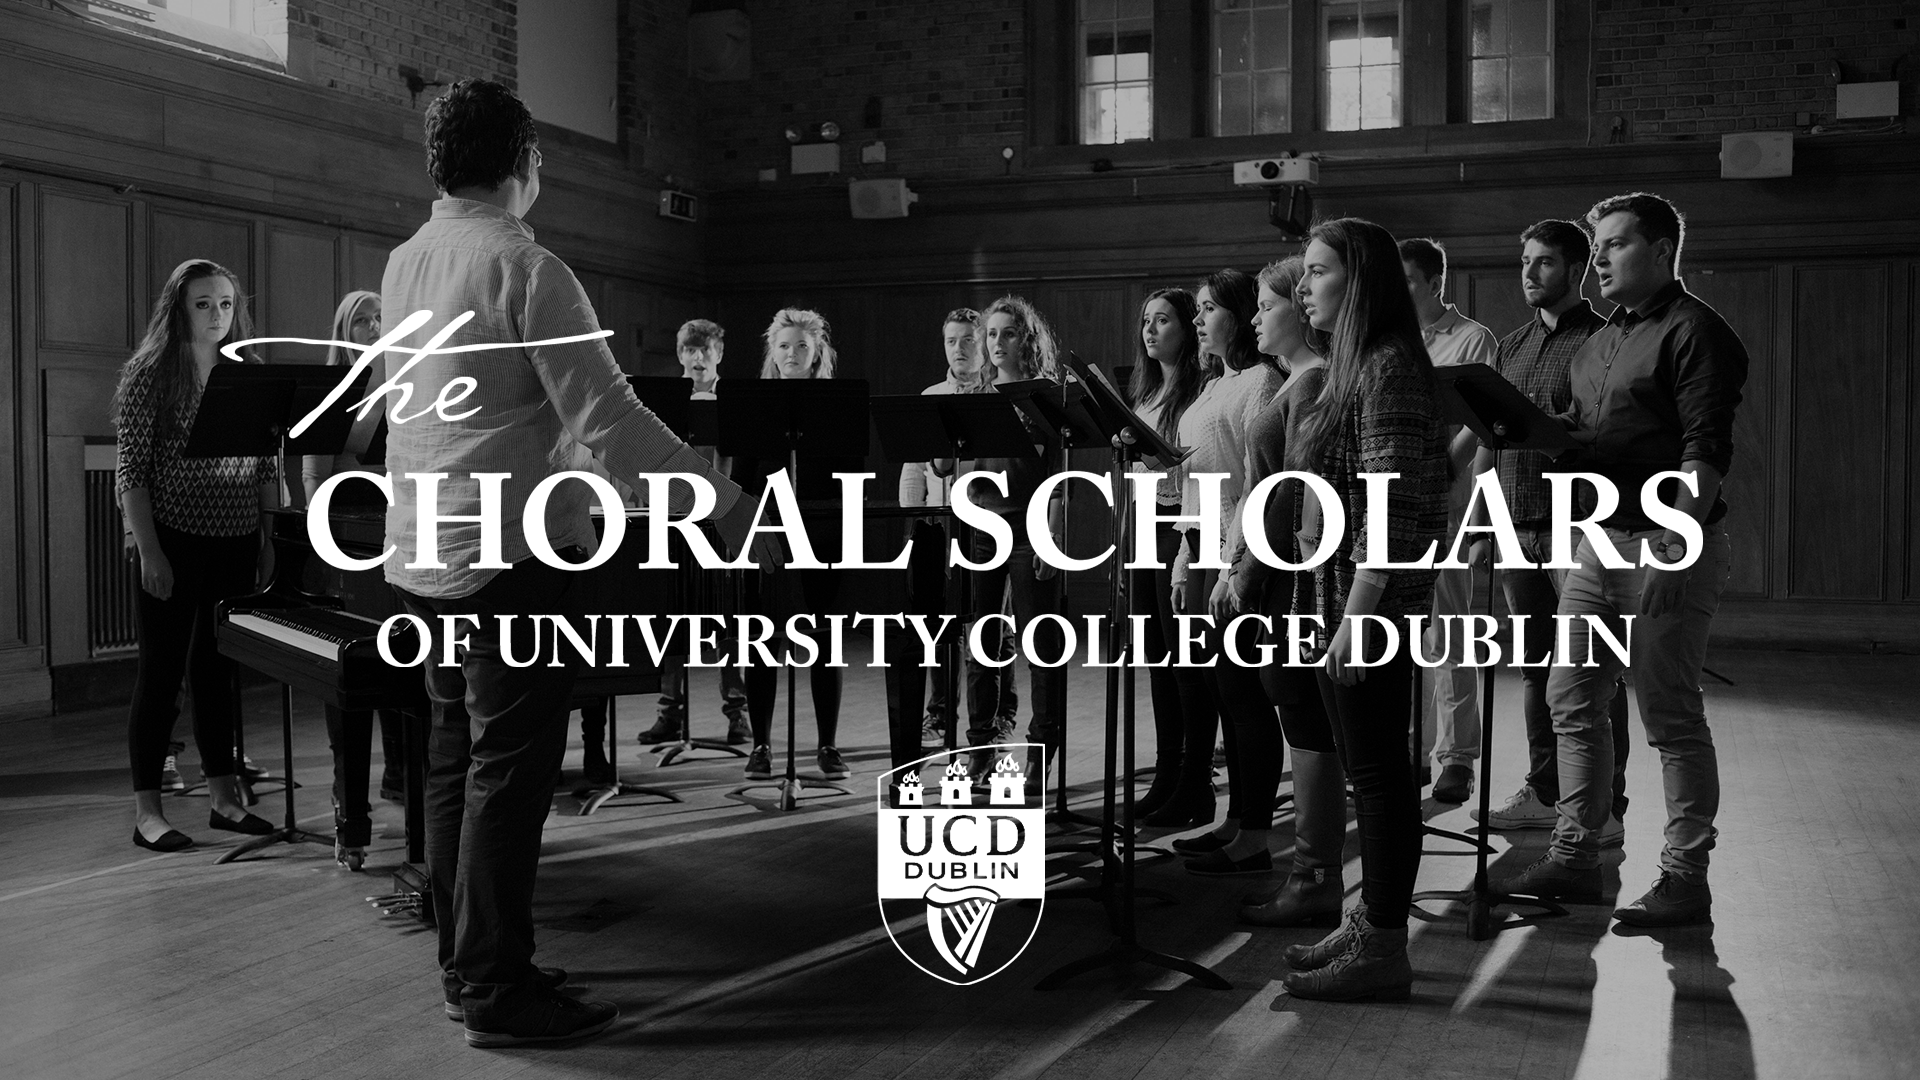 Scholars | The Choral Scholars